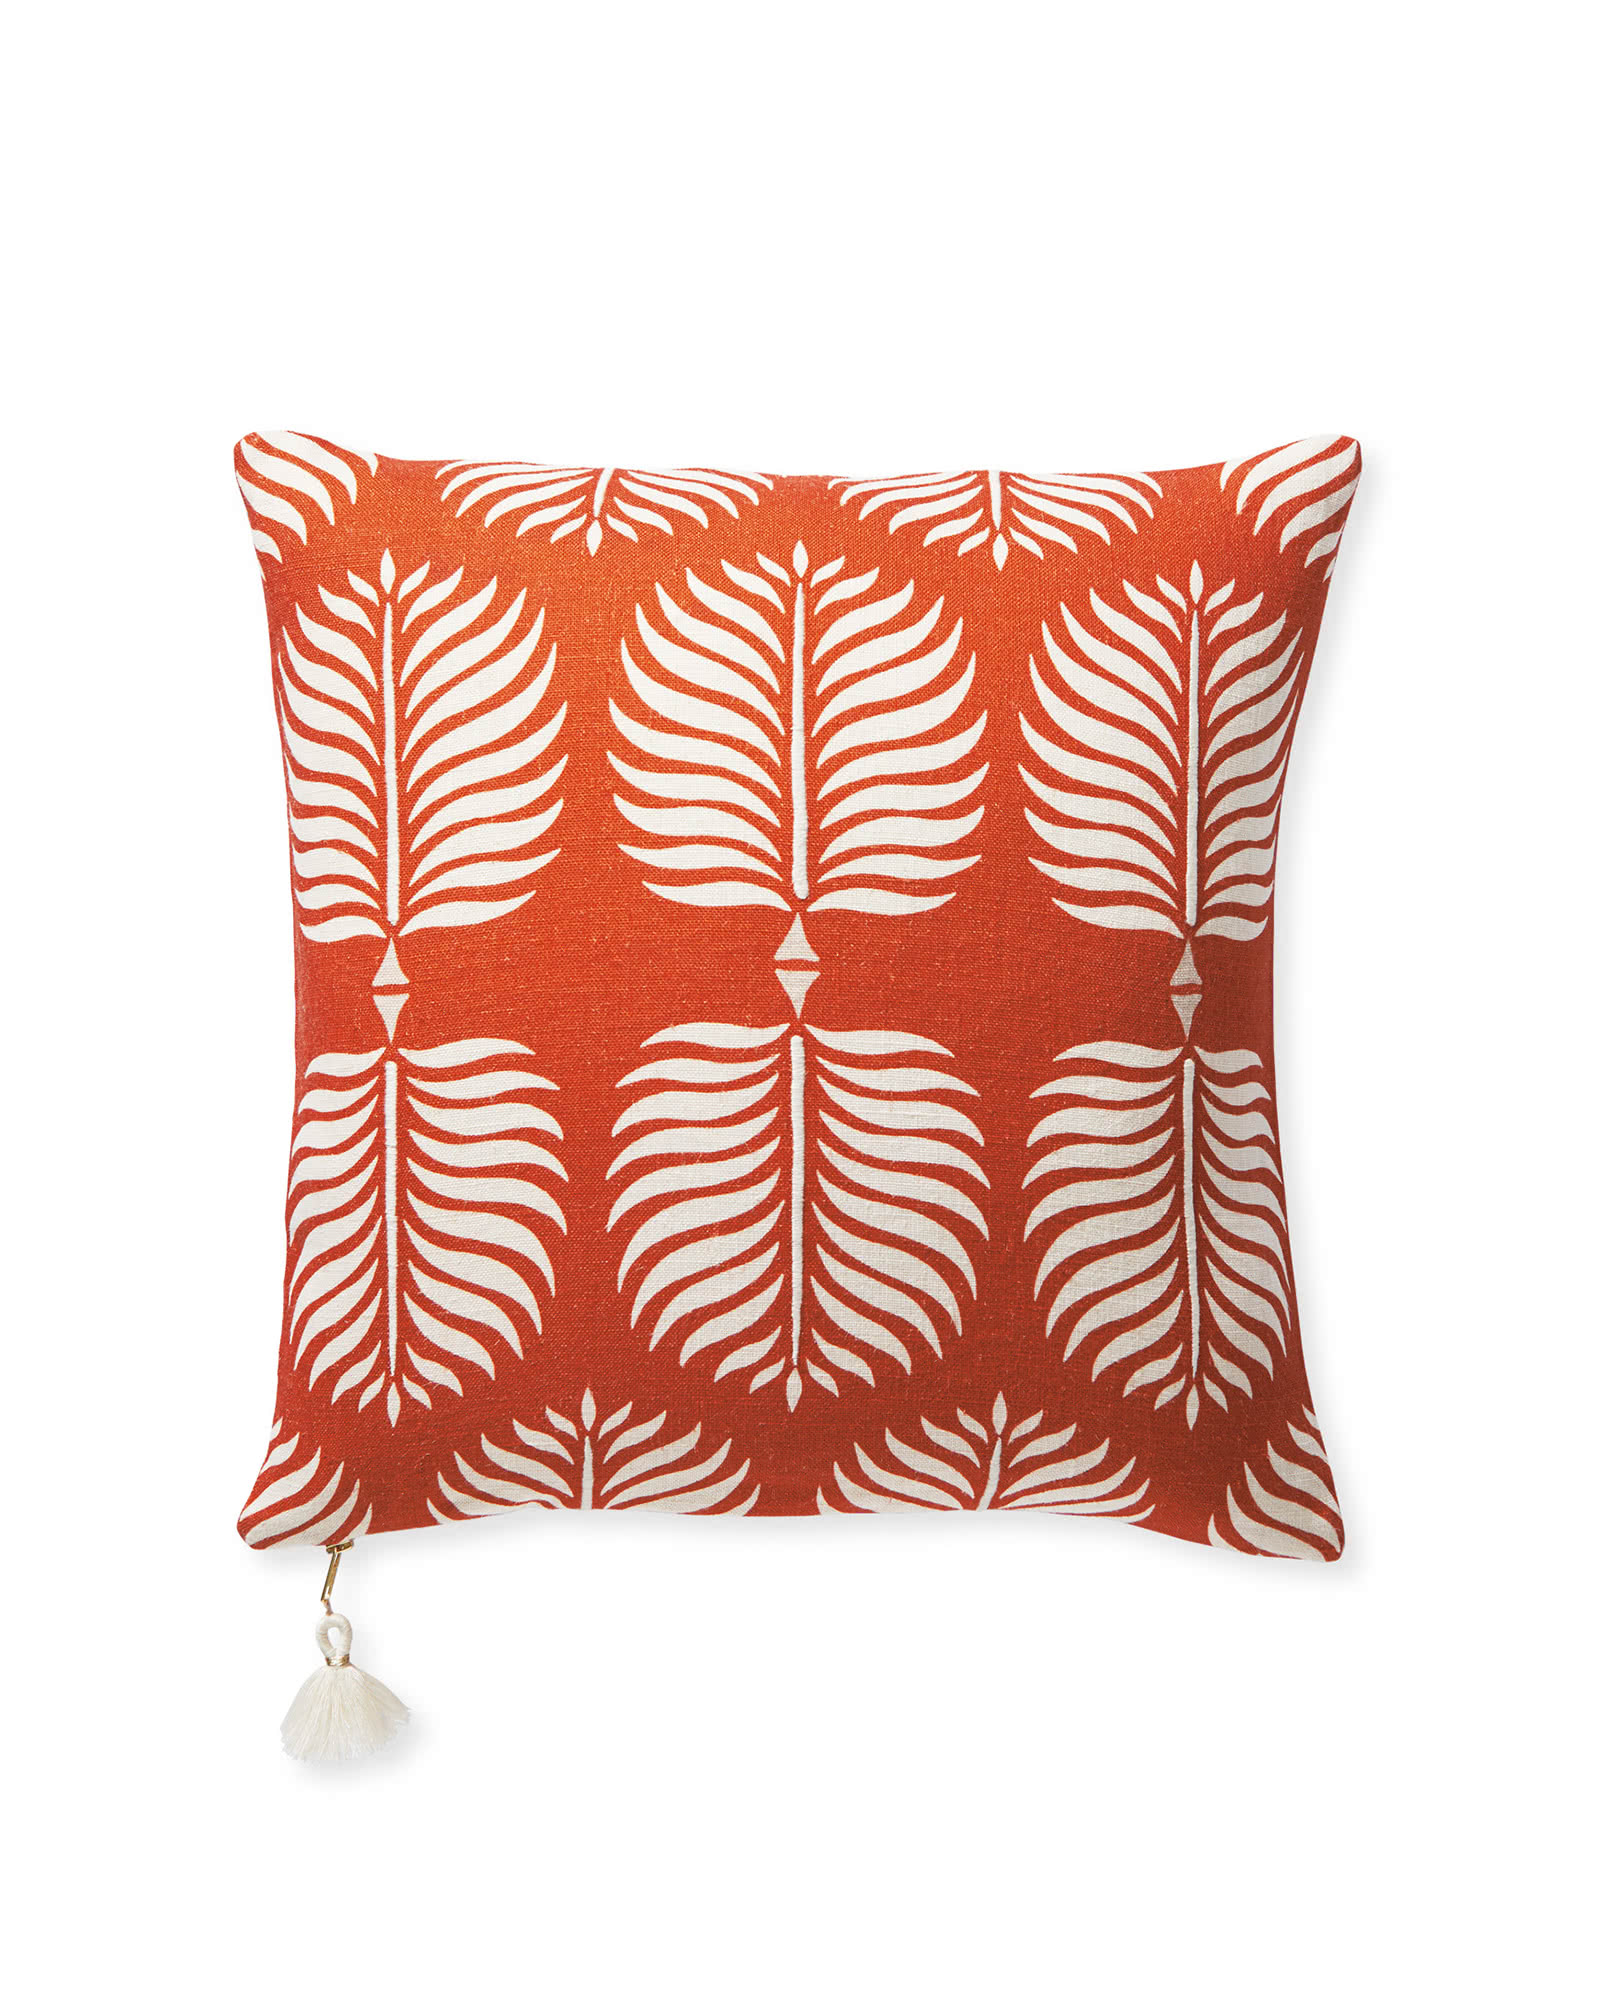 Granada Pillow Cover, Terracotta